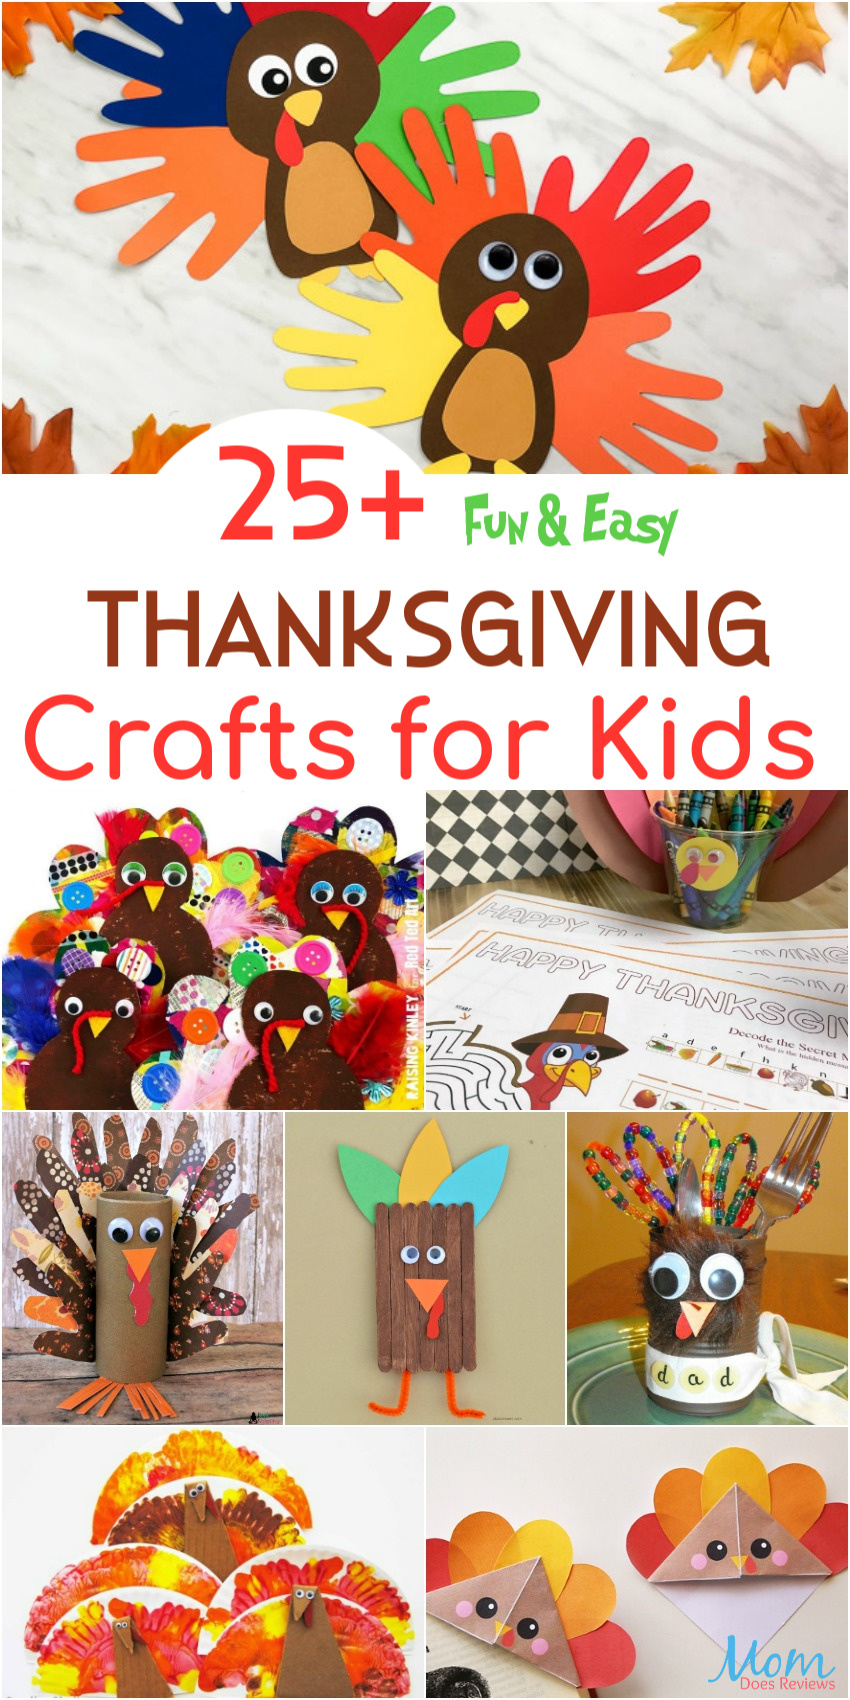 25+ Fun & Easy Thanksgiving Crafts for Kids #funstuff #thanksgiving #craftsfor kids